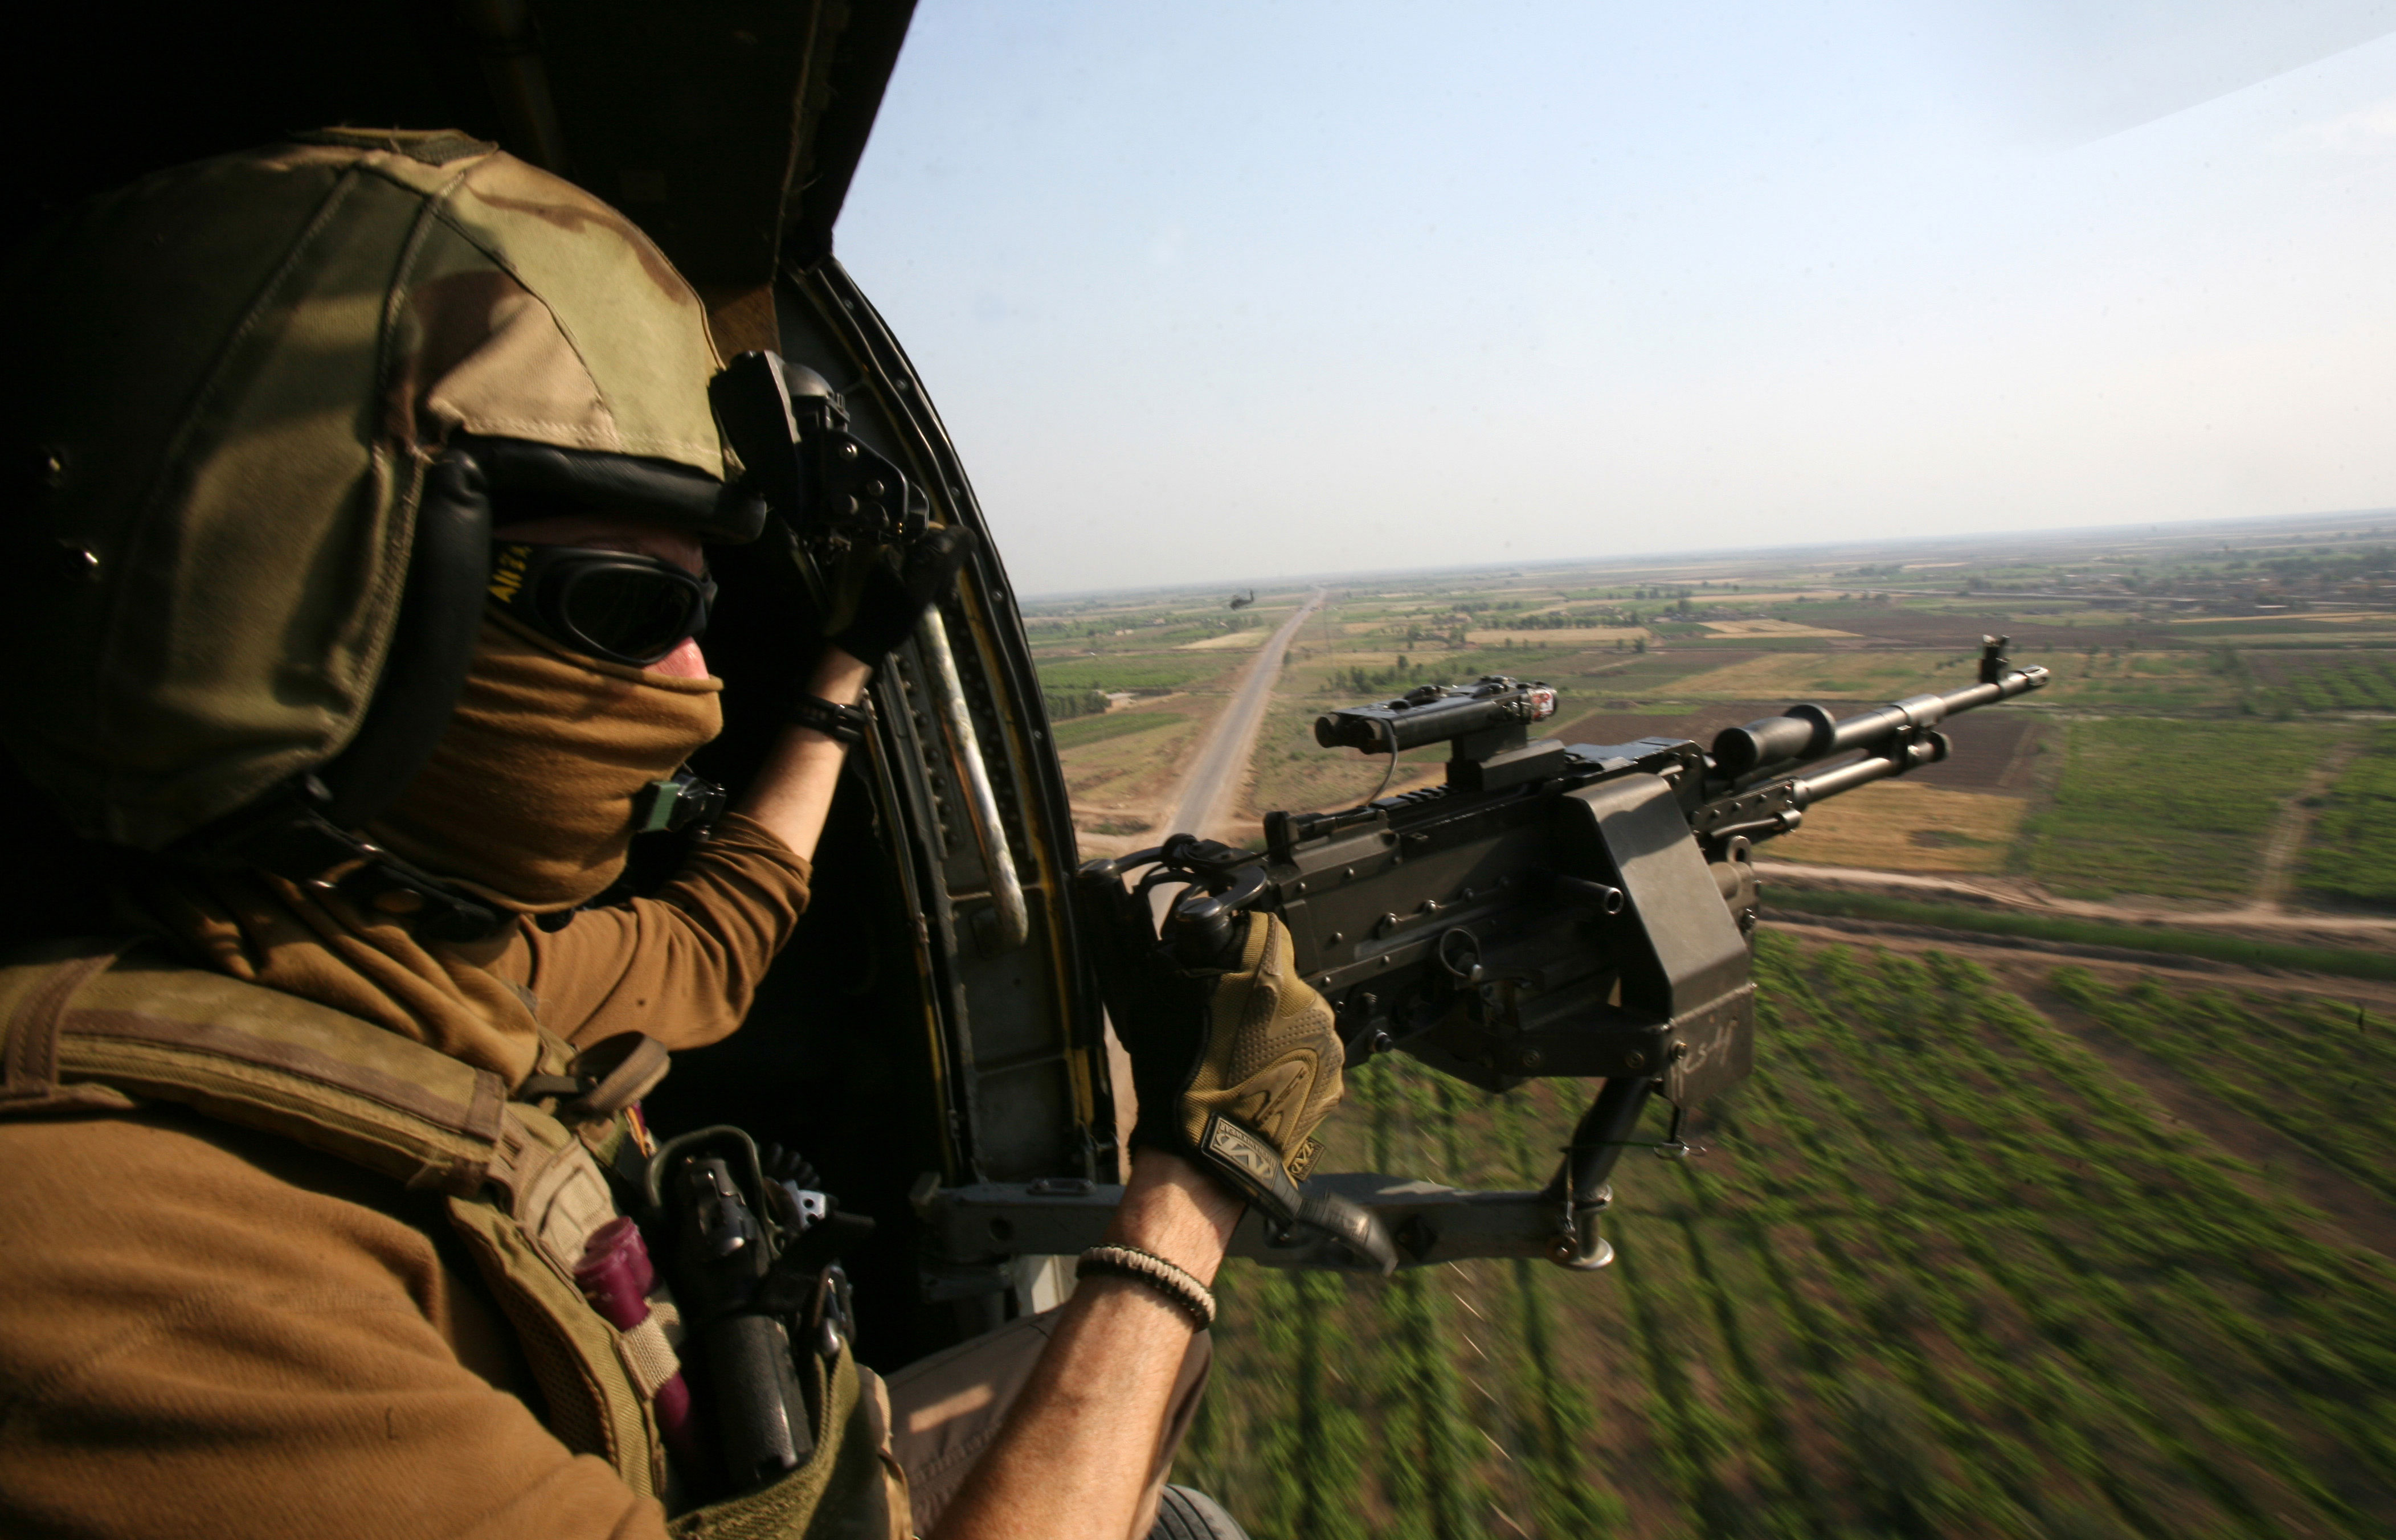 HH-60H Helicopter - Red Wolves - Door Gunner & Photo : HH-60H helicopter door gunner pezcame.com